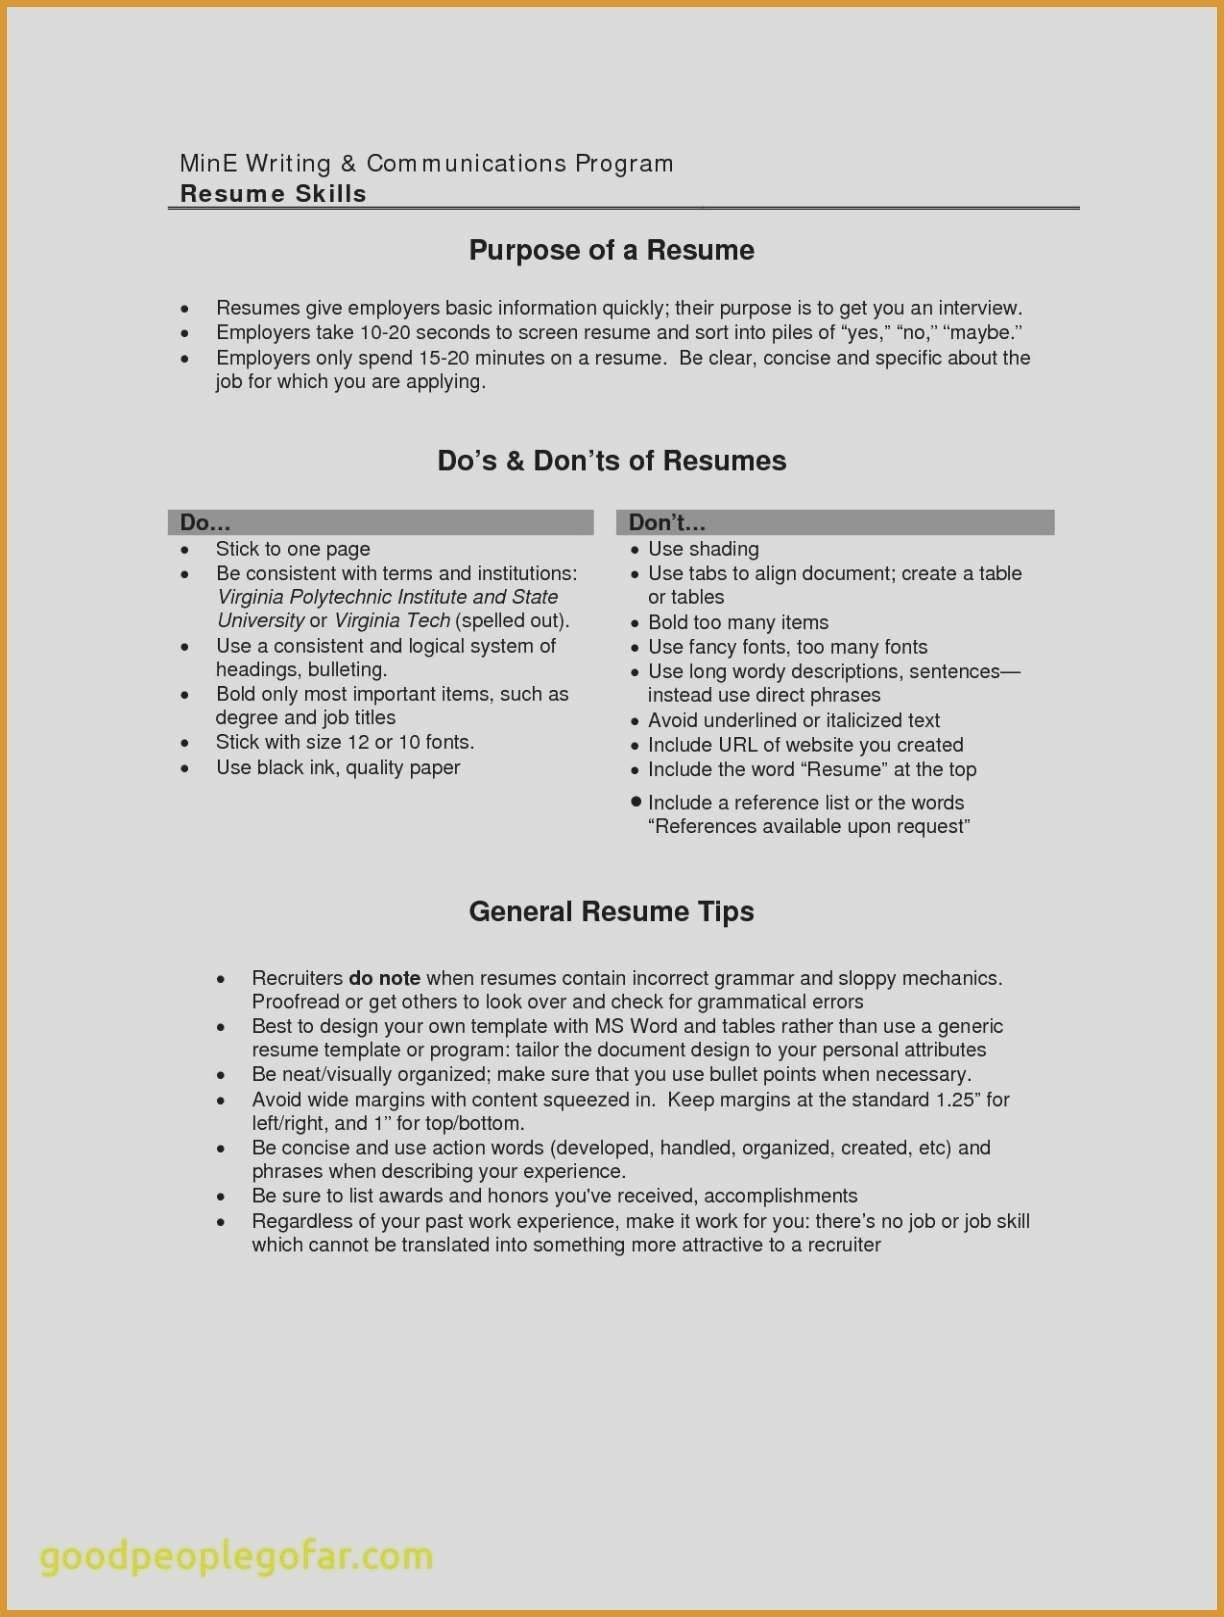 Resume Action Word List - some Good Skills to Put A Resume List Skills to Put A Image